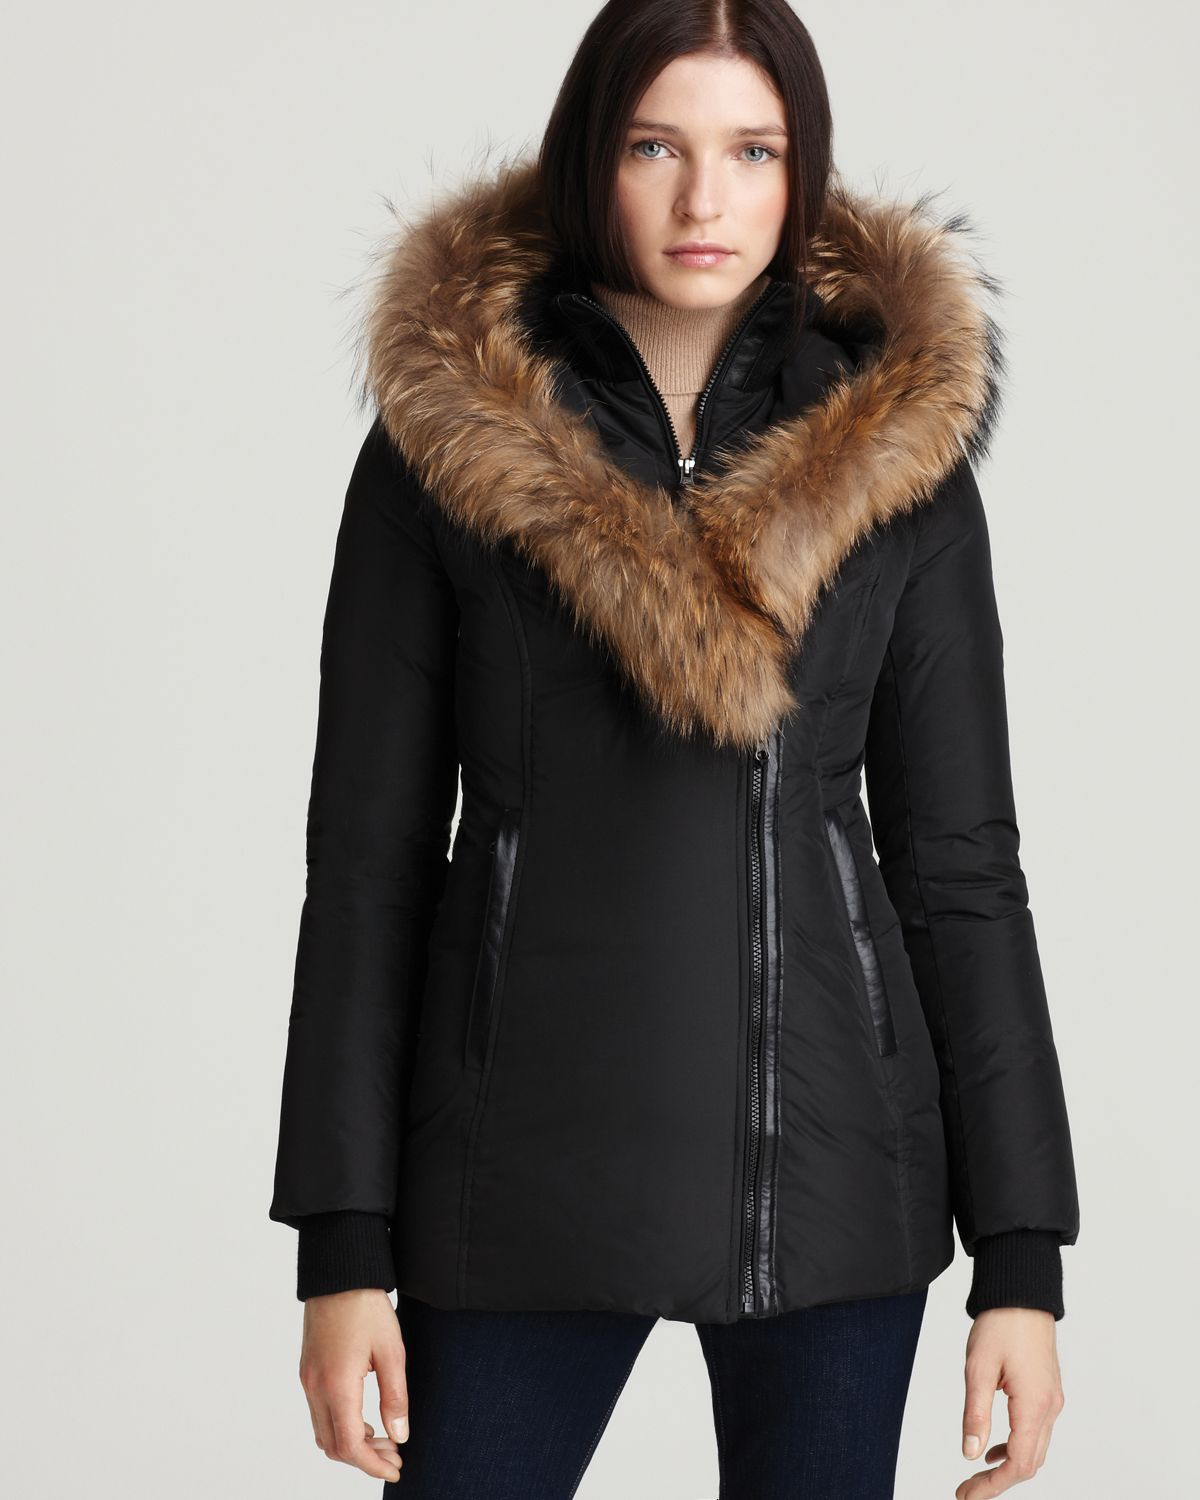 Coat Fur Hood - JacketIn